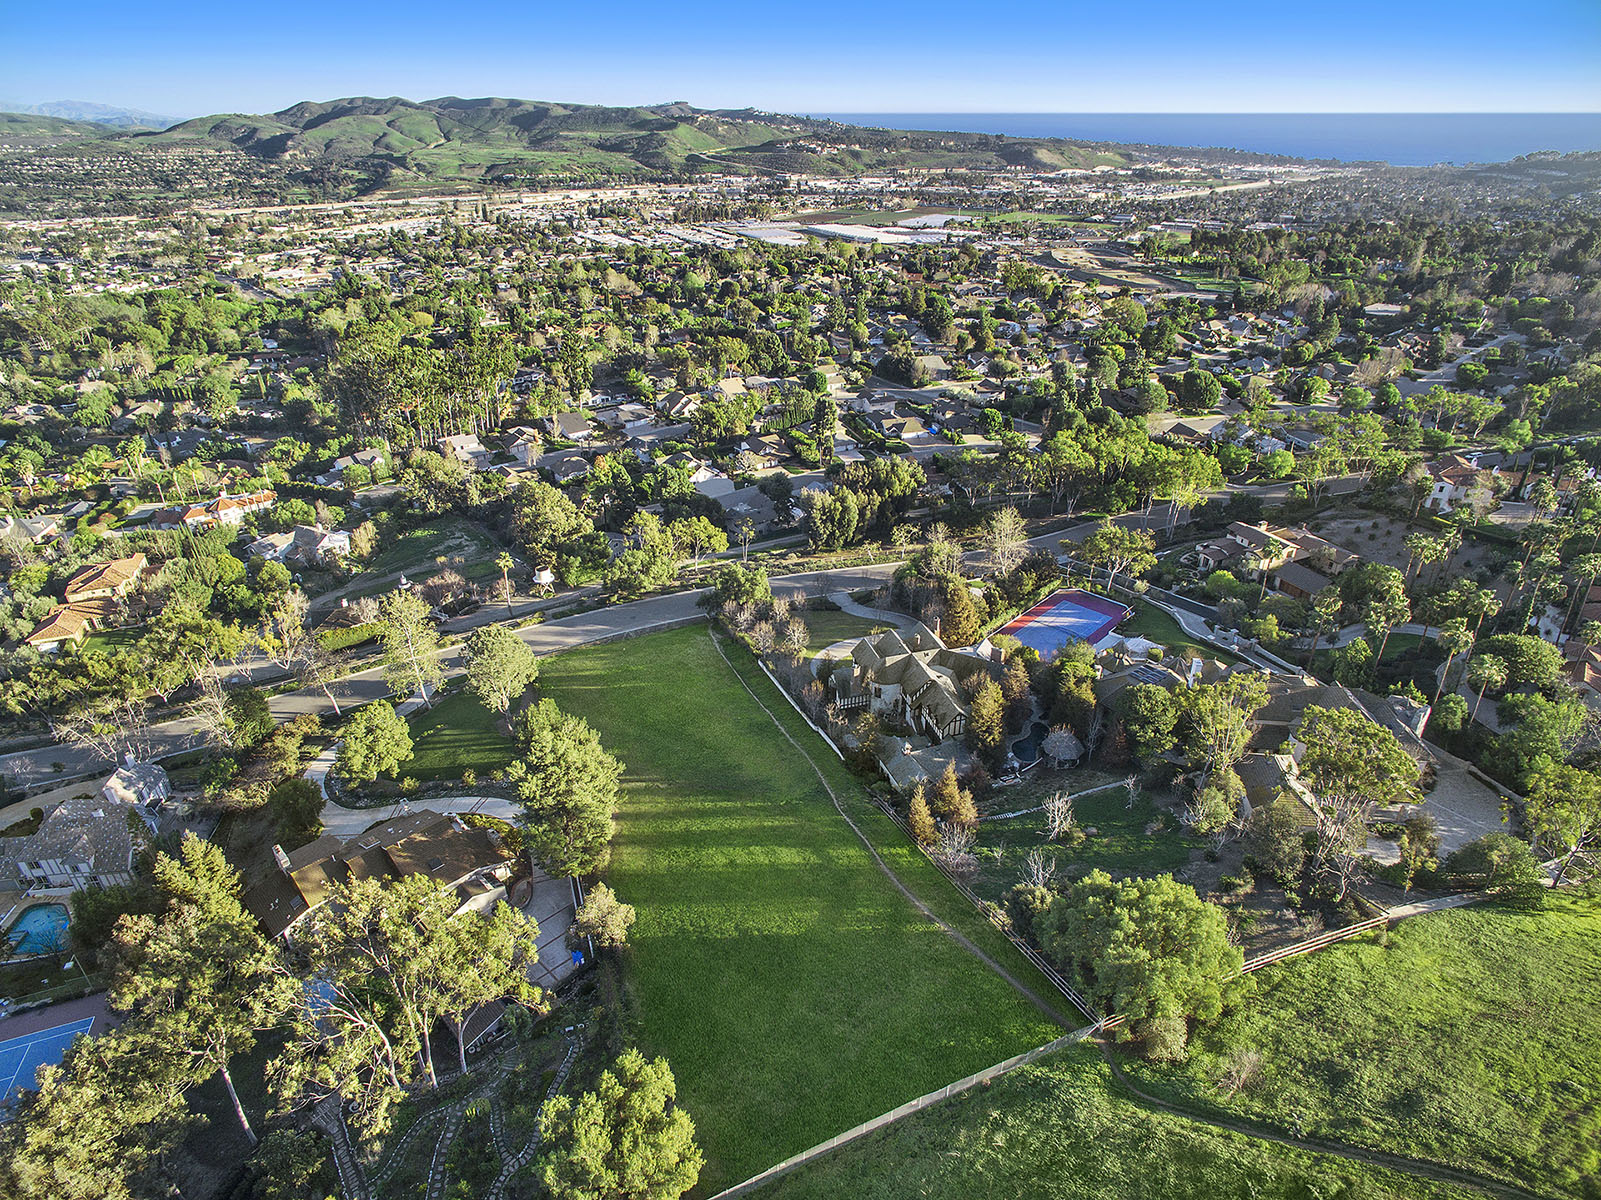 Land for Sale at 31721 Peppertree San Juan Capistrano, California 92675 United States